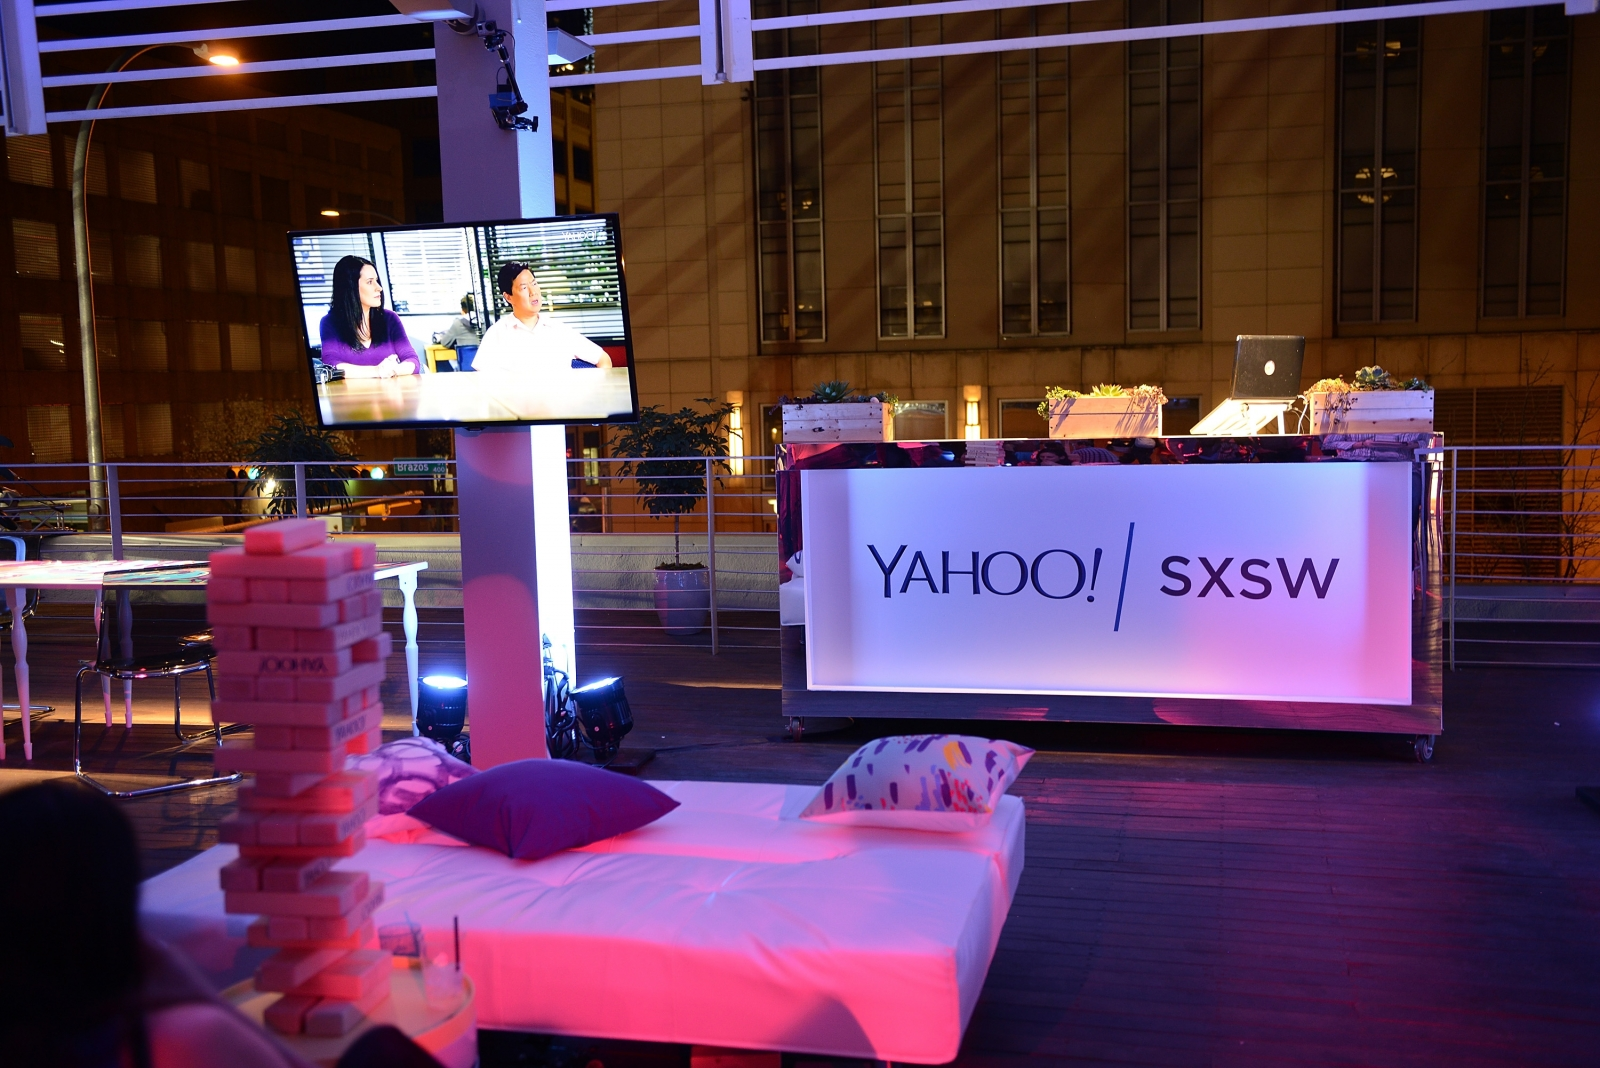 Yahoo announced time sensitive passwords at SXSW